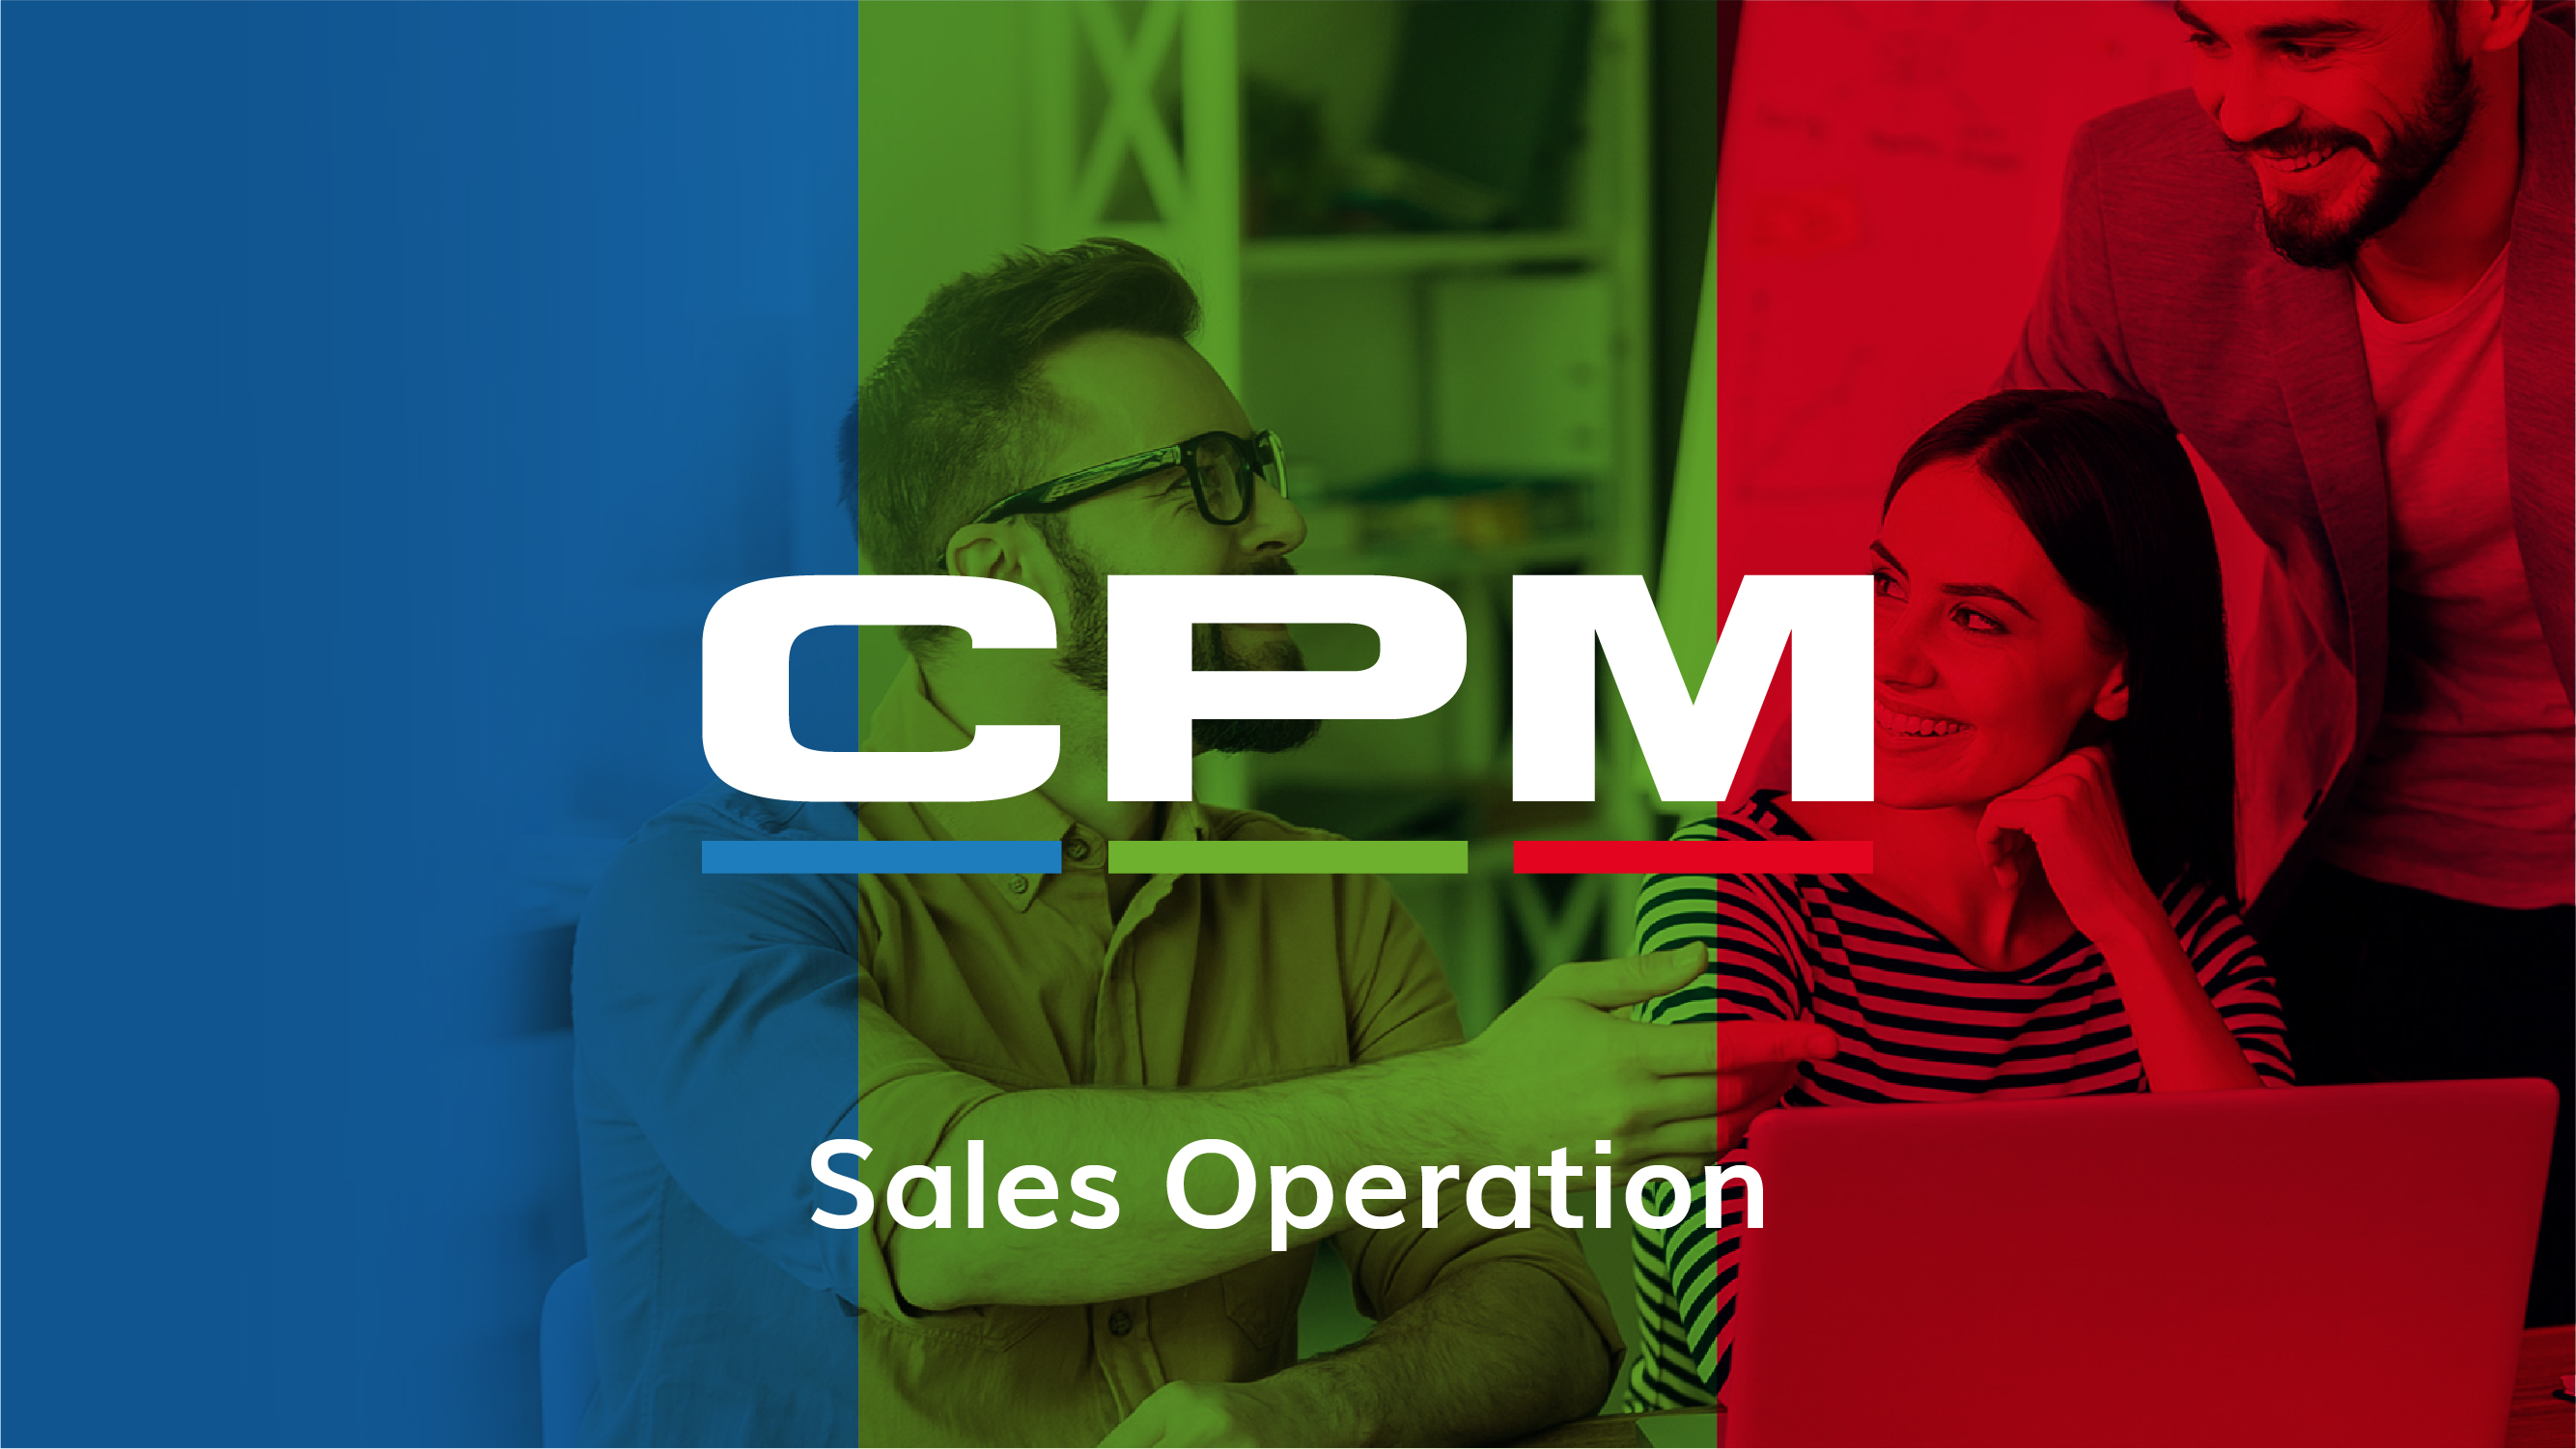 Trade Marketing & Sales Operations Resource: Key To Success